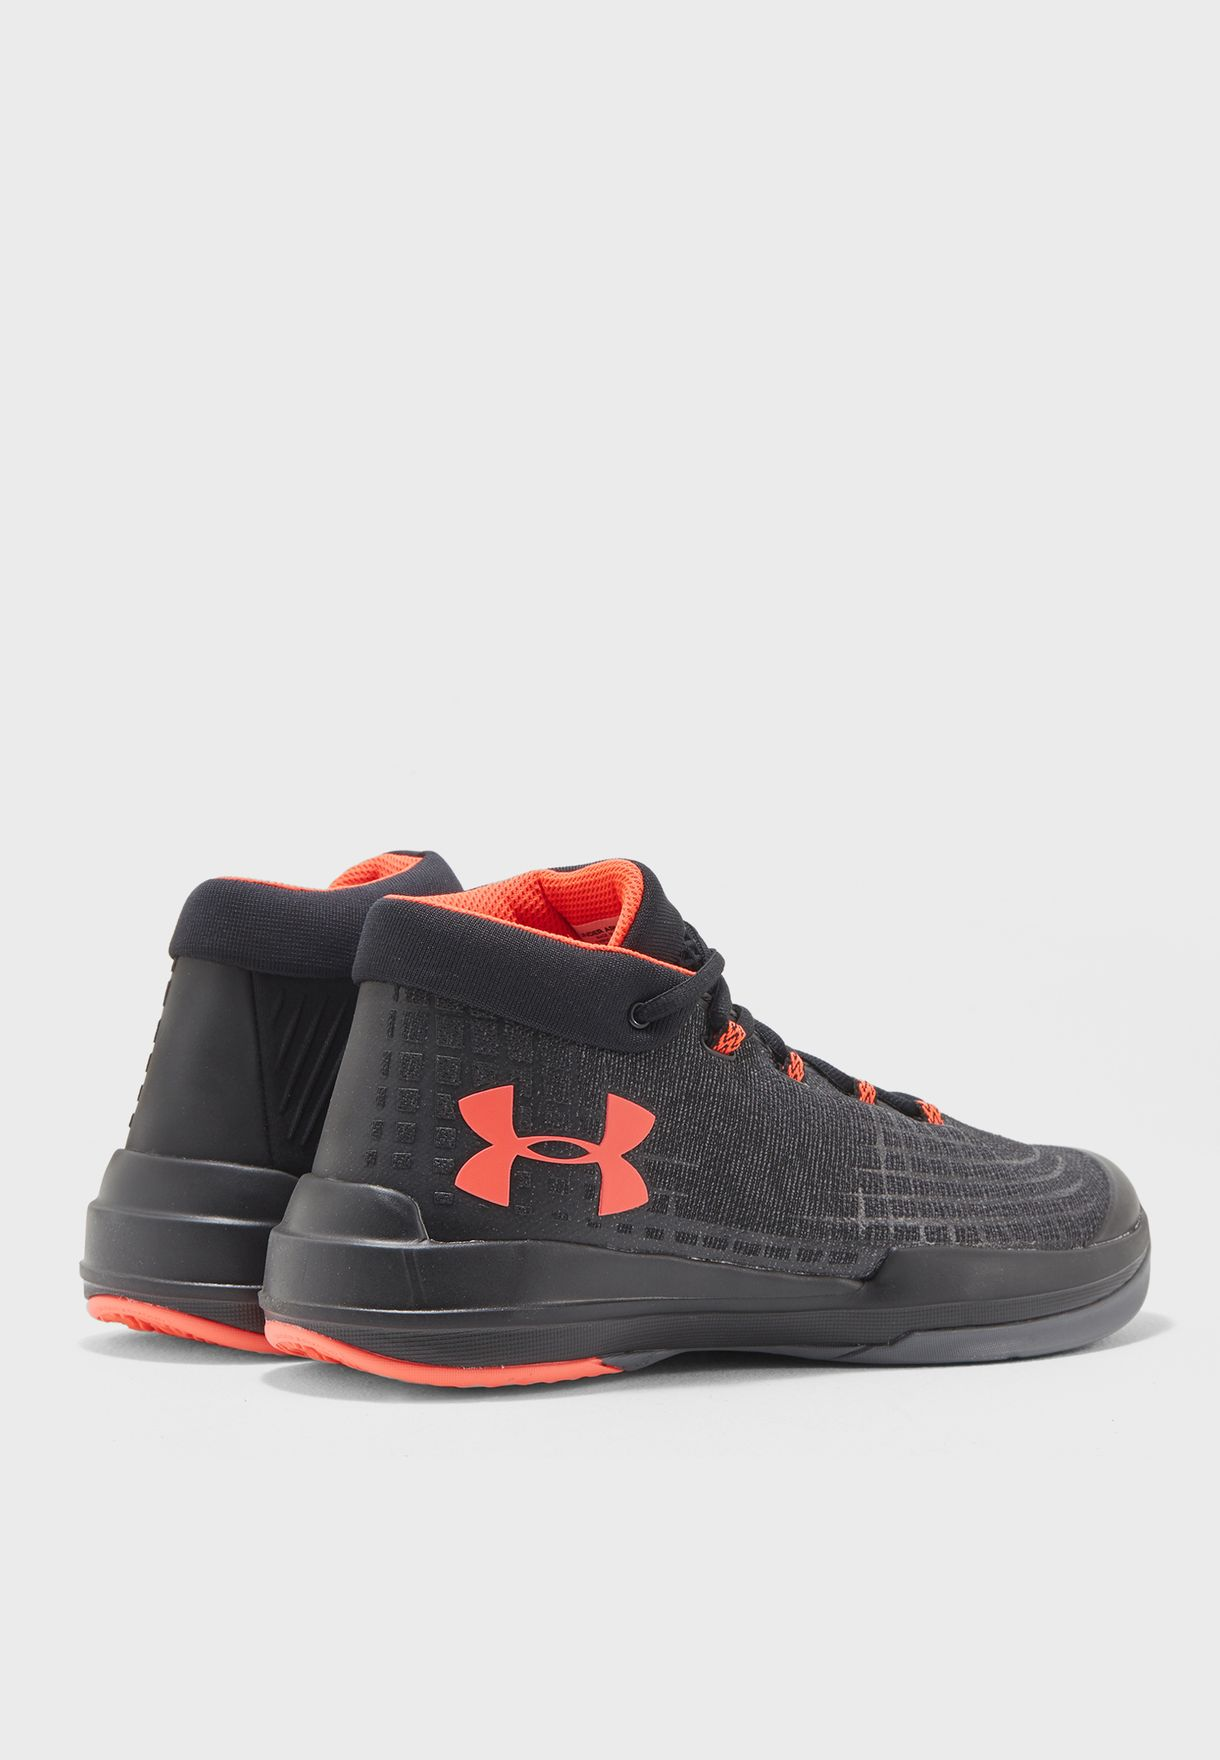 a7469fe3d904 Shop Under Armour grey NXT 2 1298311-002 for Men in Kuwait ...